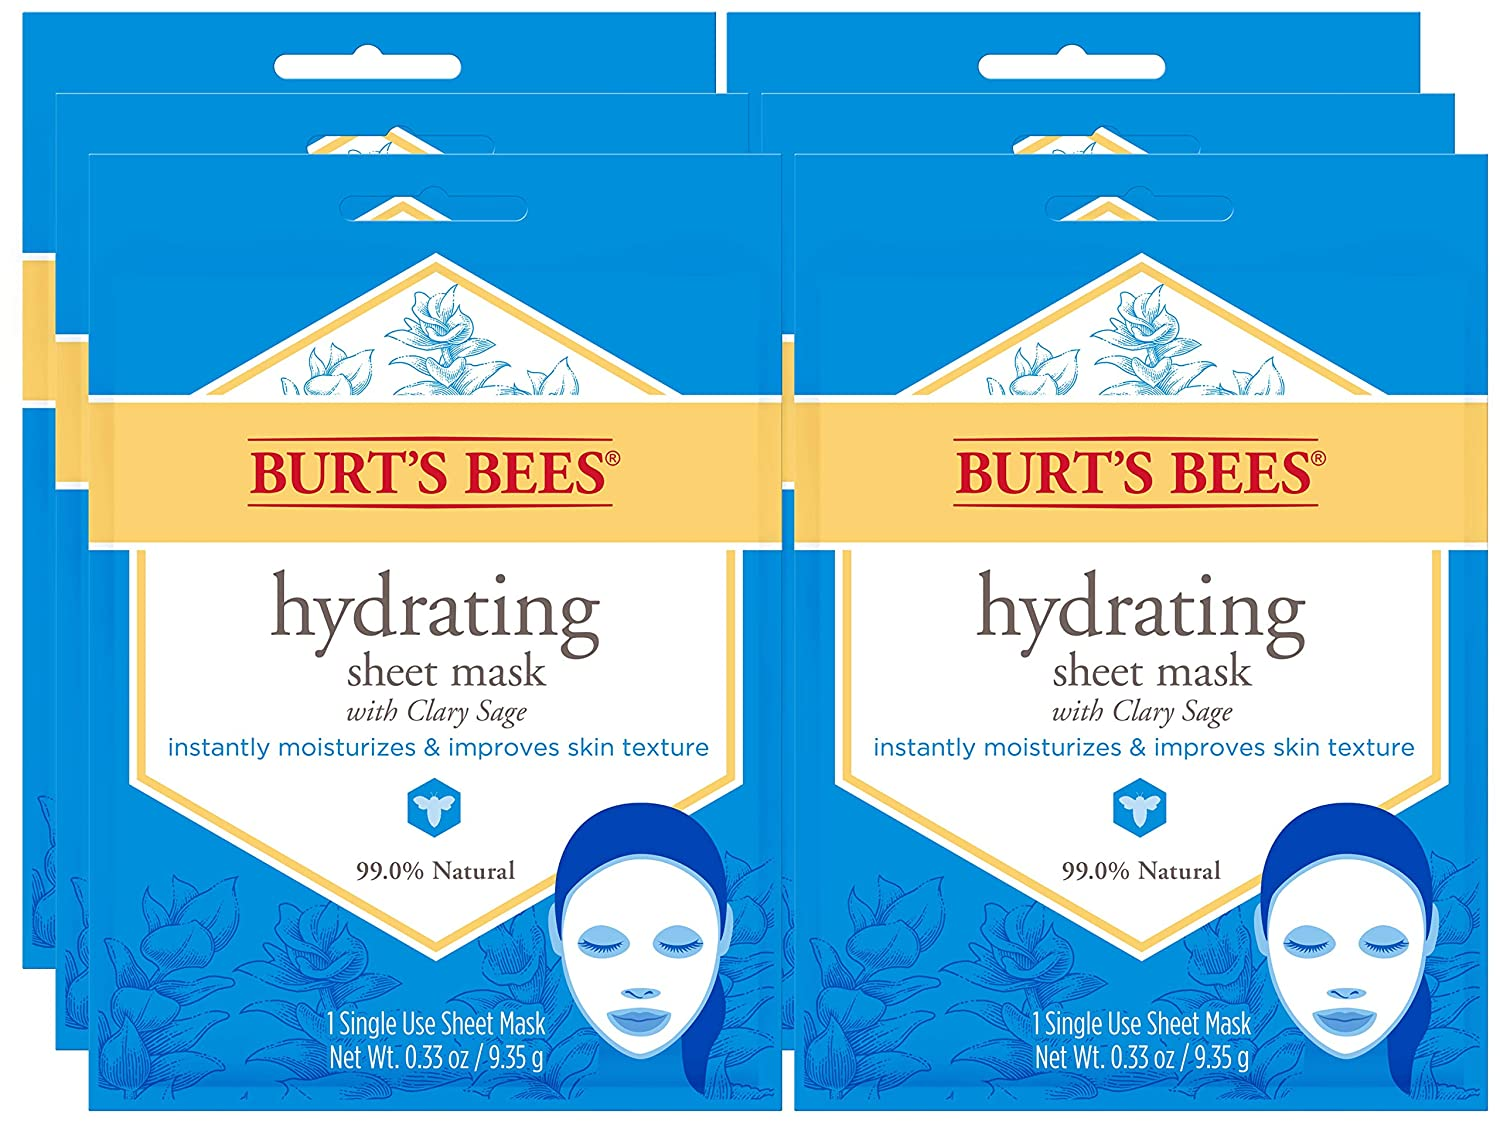 Burt's Bees Hydrating Face Mask, Single Use Sheet Mask, 6 Count: Beauty